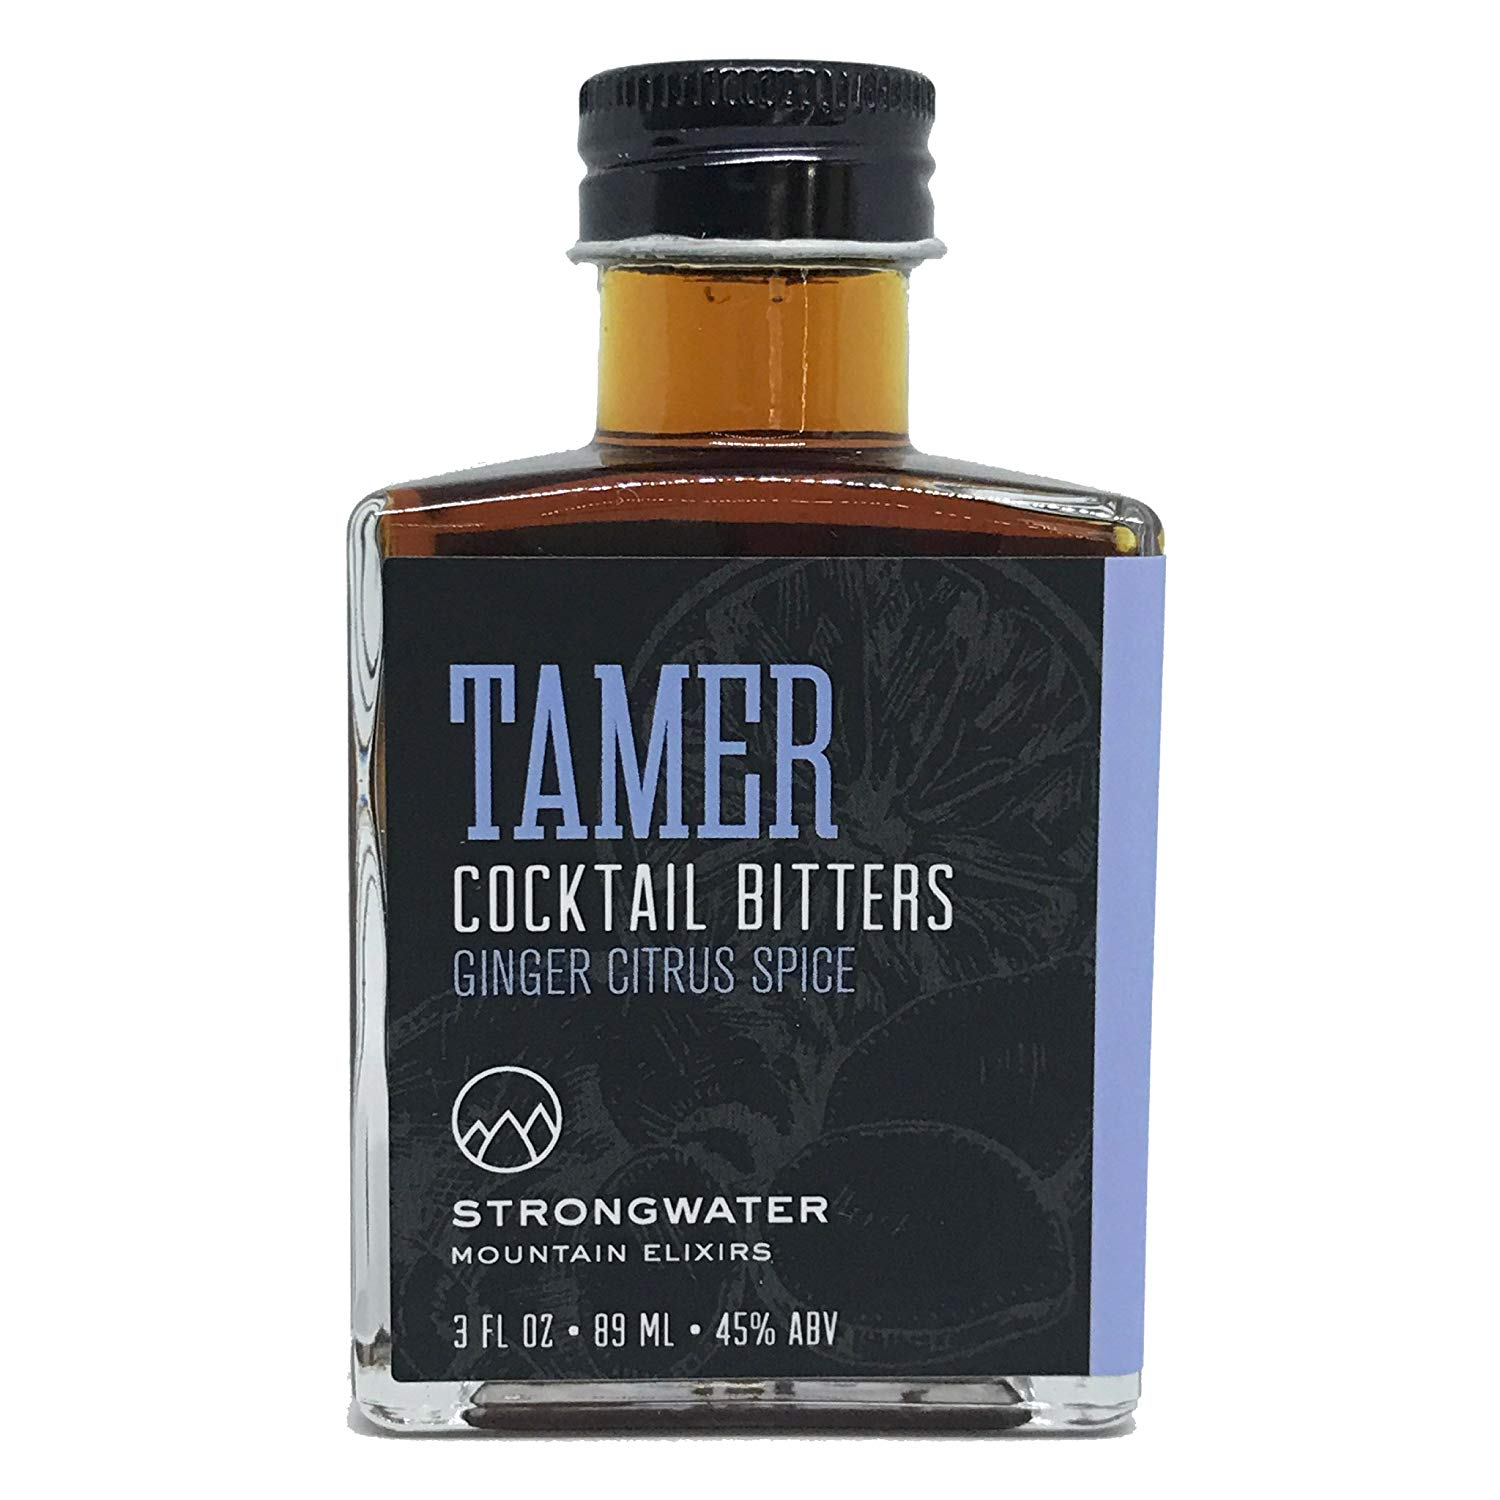 Tamer Cocktail Bitters